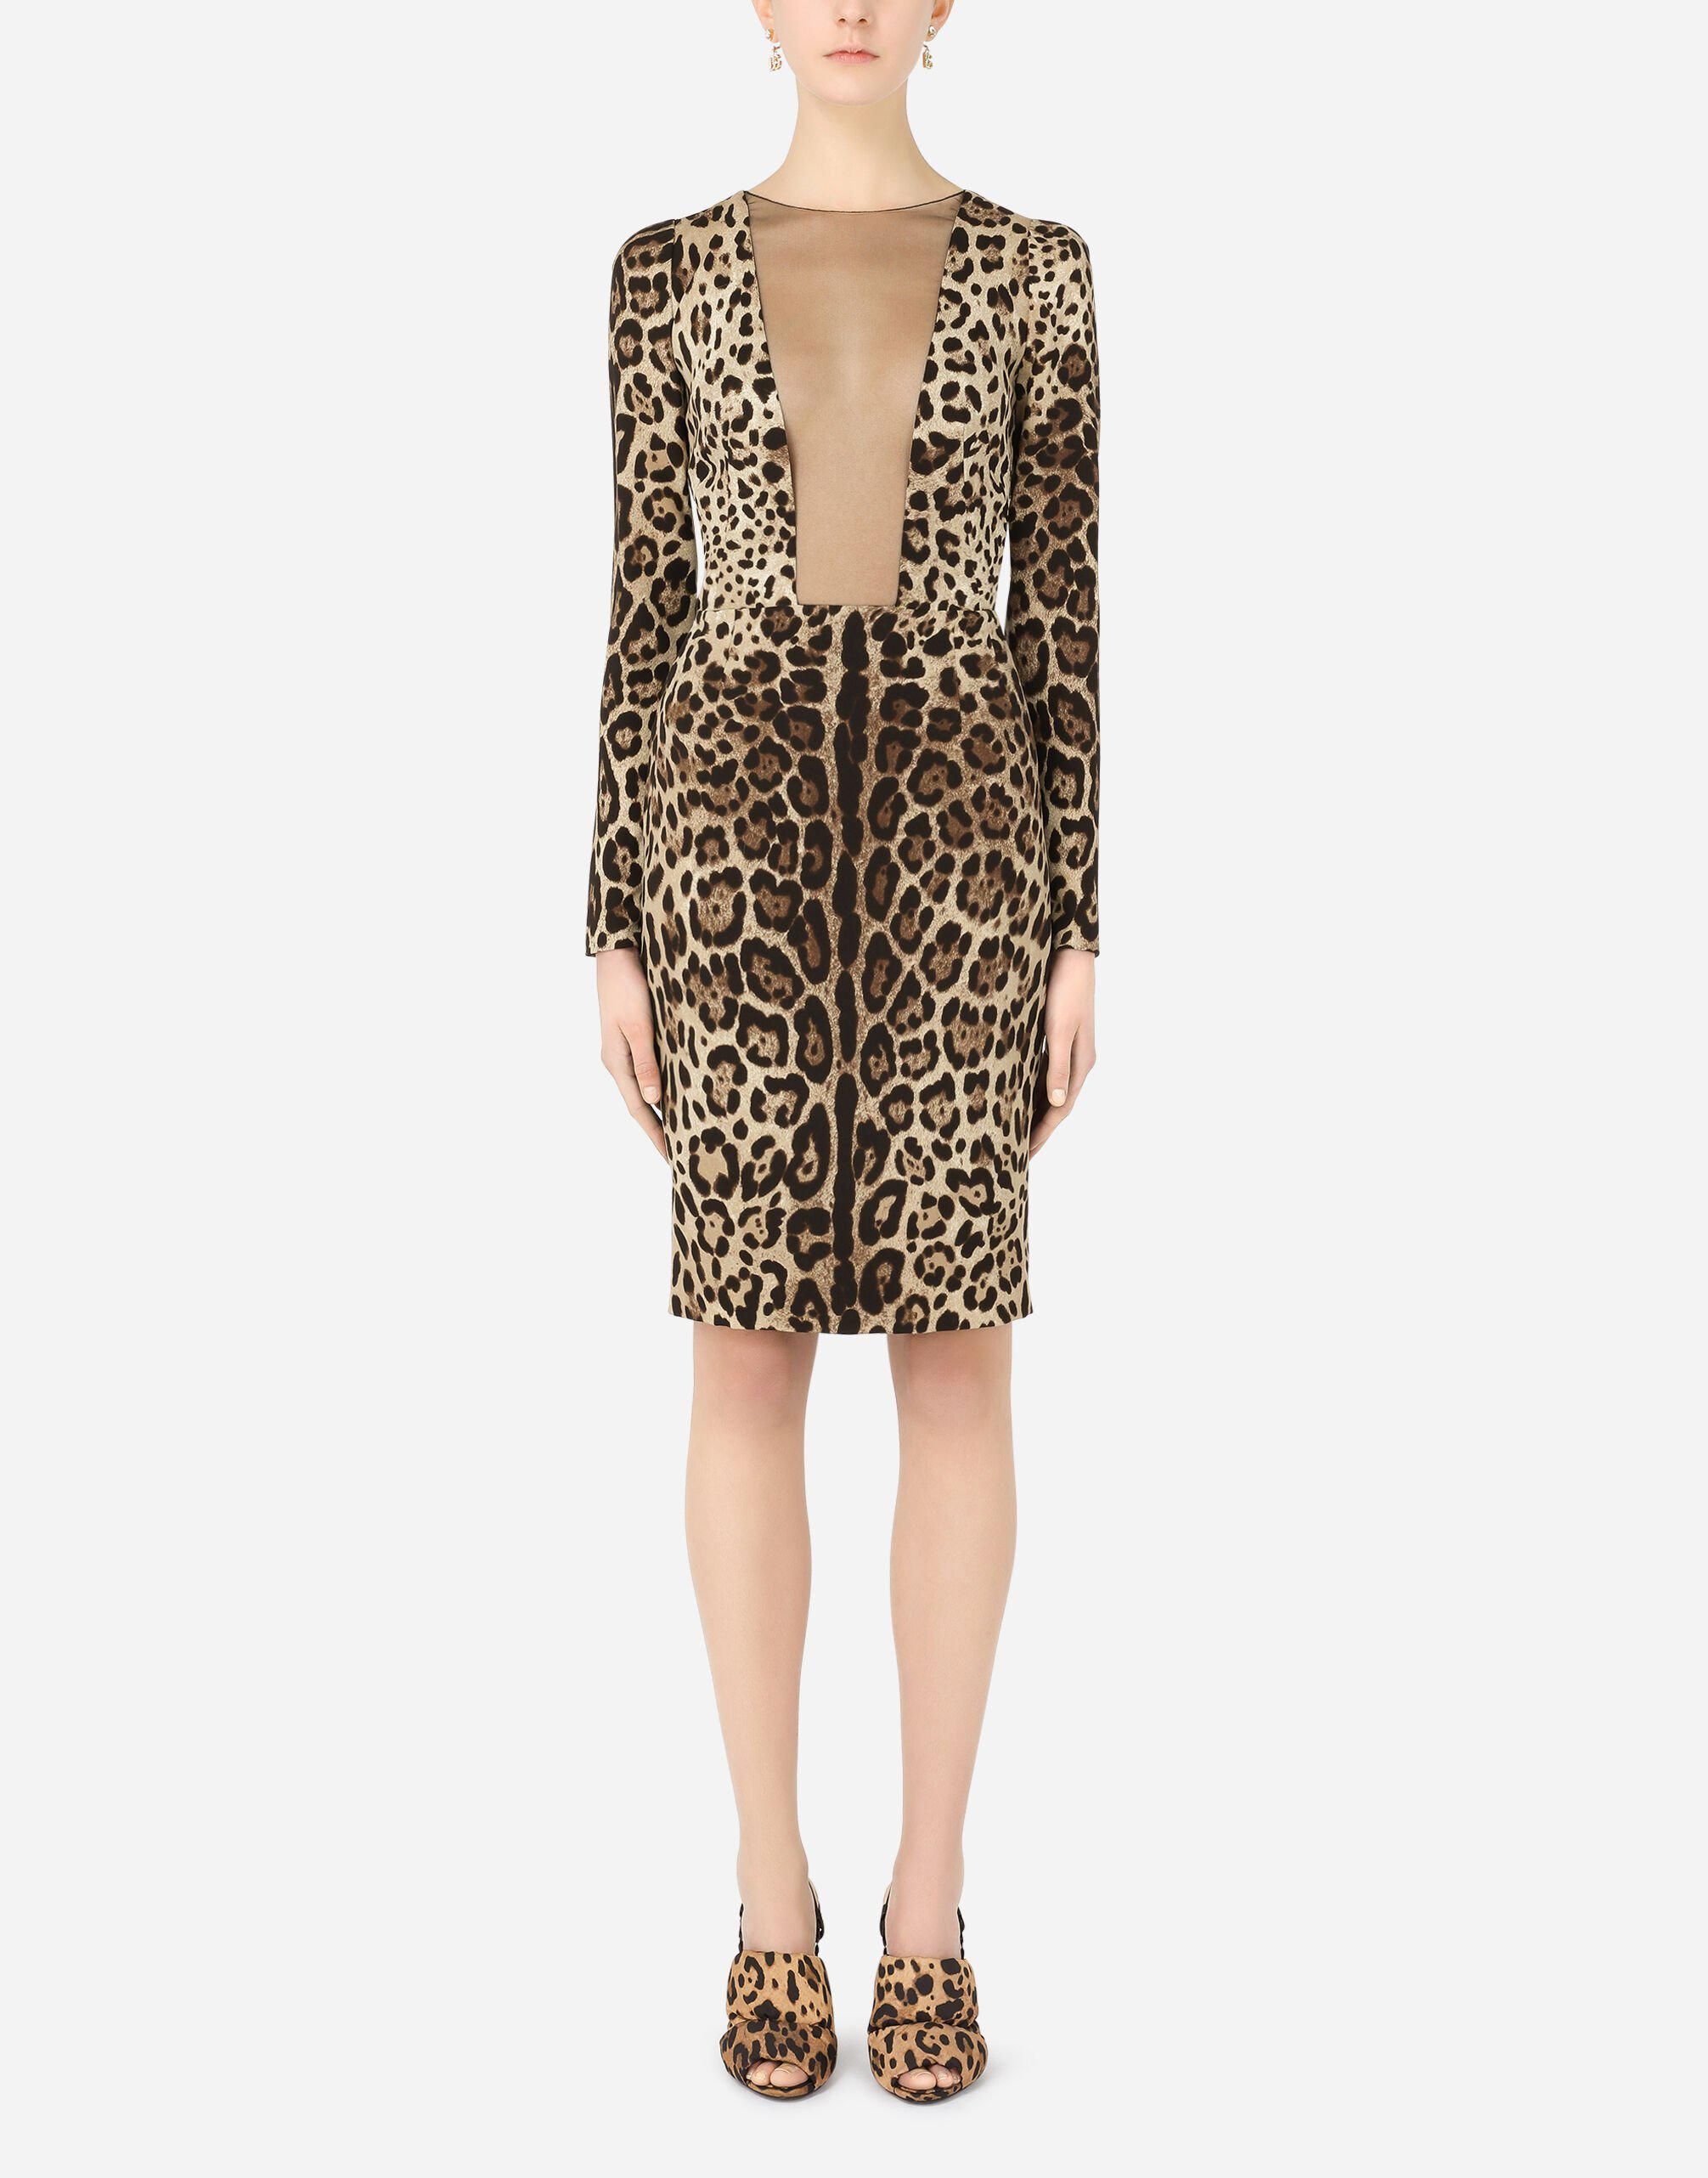 Leopard-print charmeuse and tulle dress